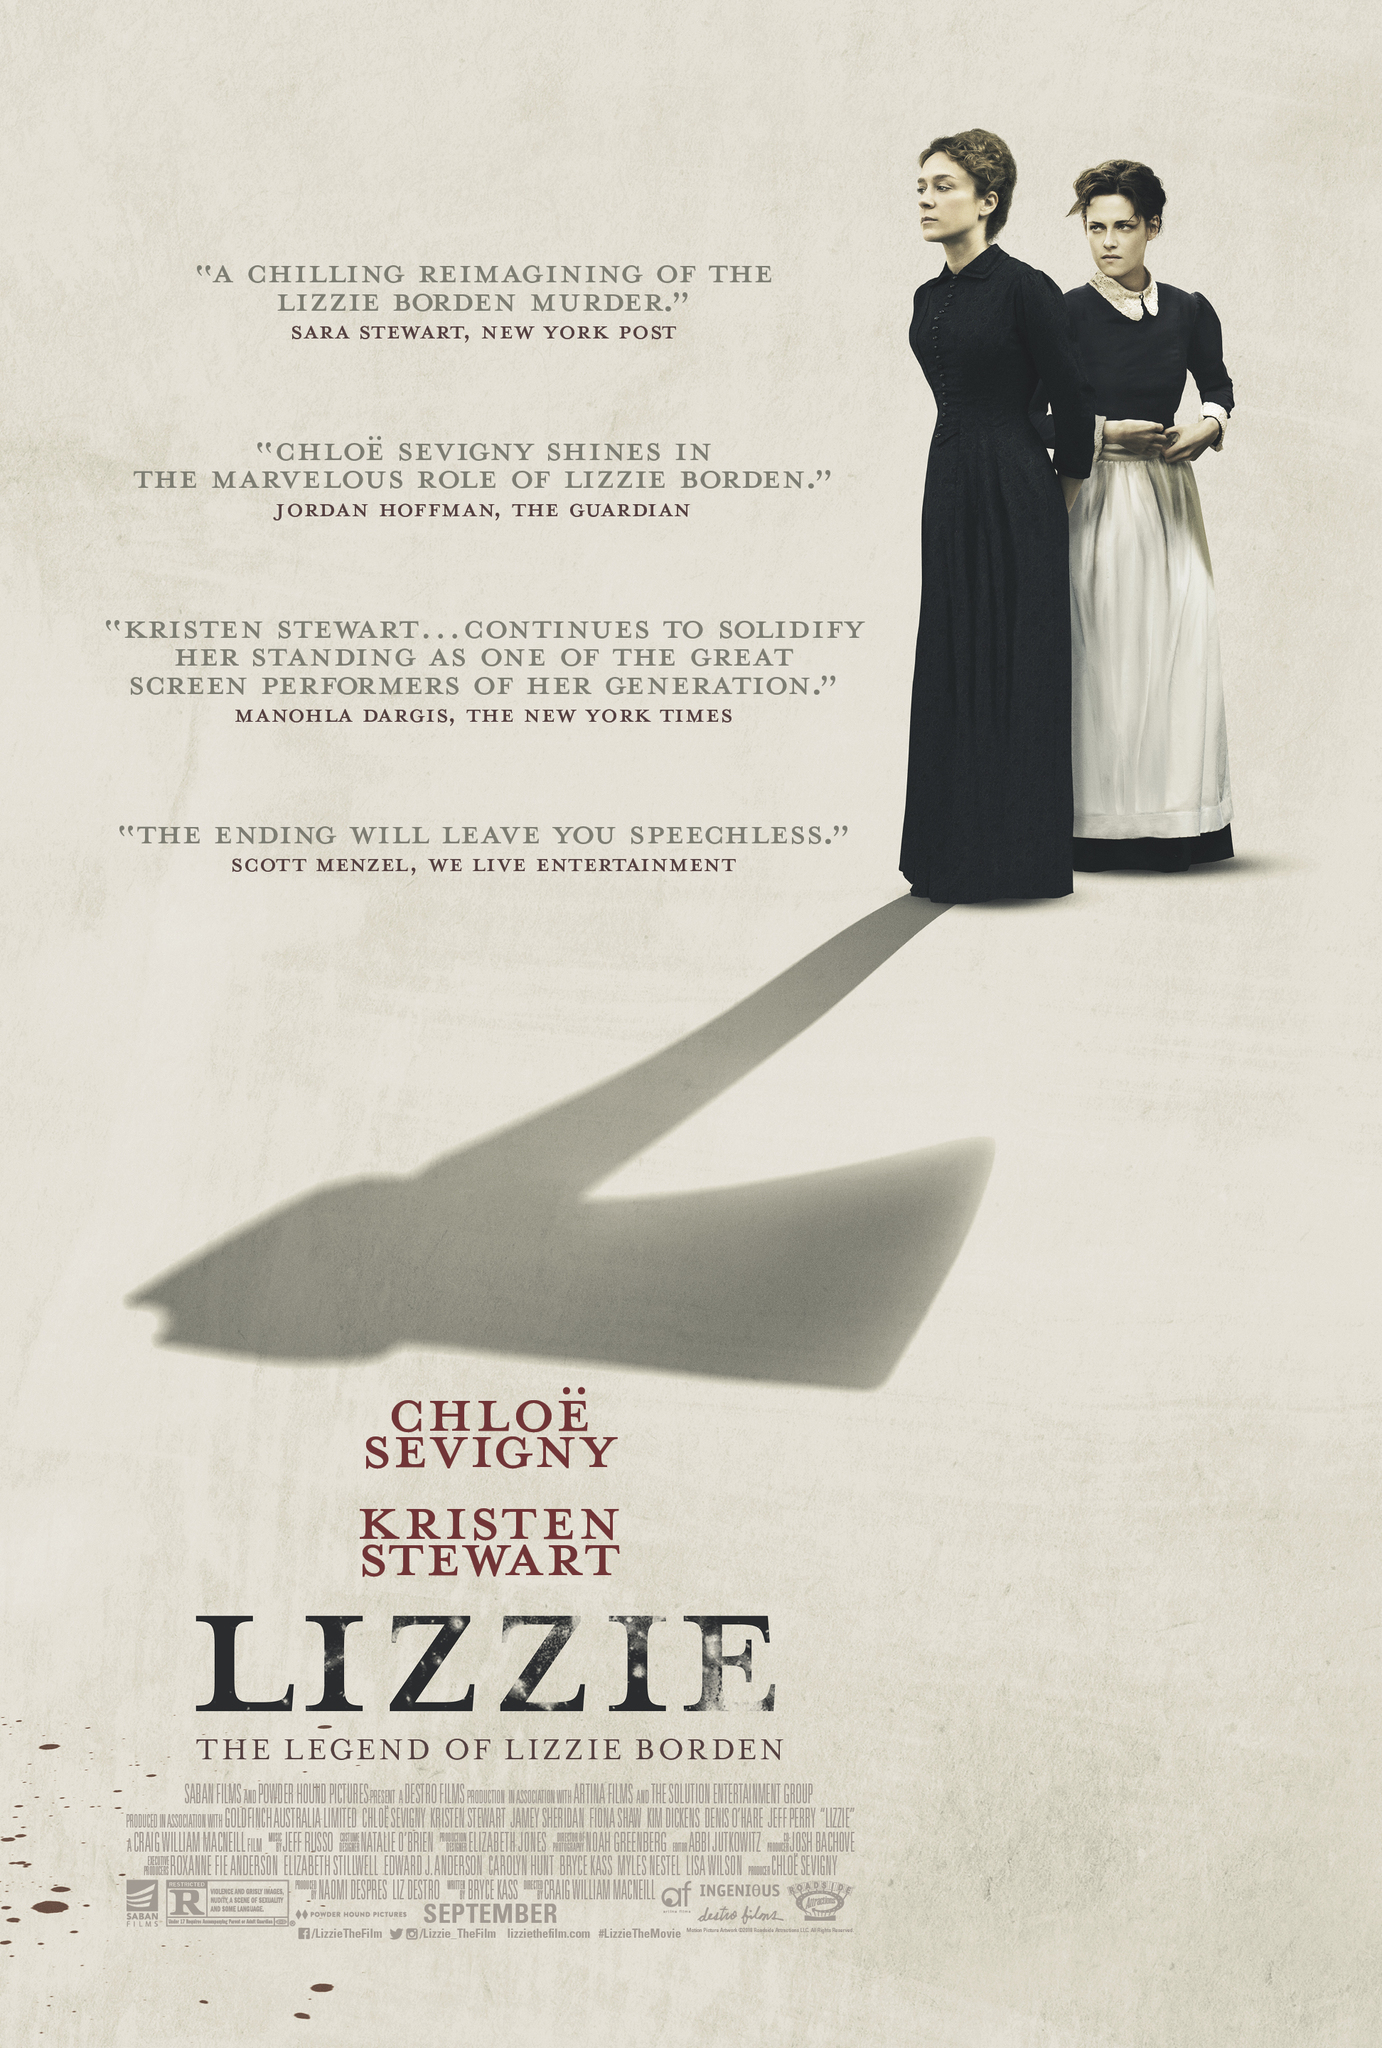 Lizzie (2018) - Directed by: Craig William MacneillStarring: Chloe Sevigny, Kristen Stewart, Fiona Shaw, Jamey Sheridan, Denis O'HareRated: R for Violence and Grisly Images, Nudity, a Scene of Sexuality, and Some LanguageRunning Time: 1 h 45 mTMM Score: 3.5 stars out of 5STRENGTHS: Acting, Writing, DirectingWEAKNESSES: A Few Shaky Scenes